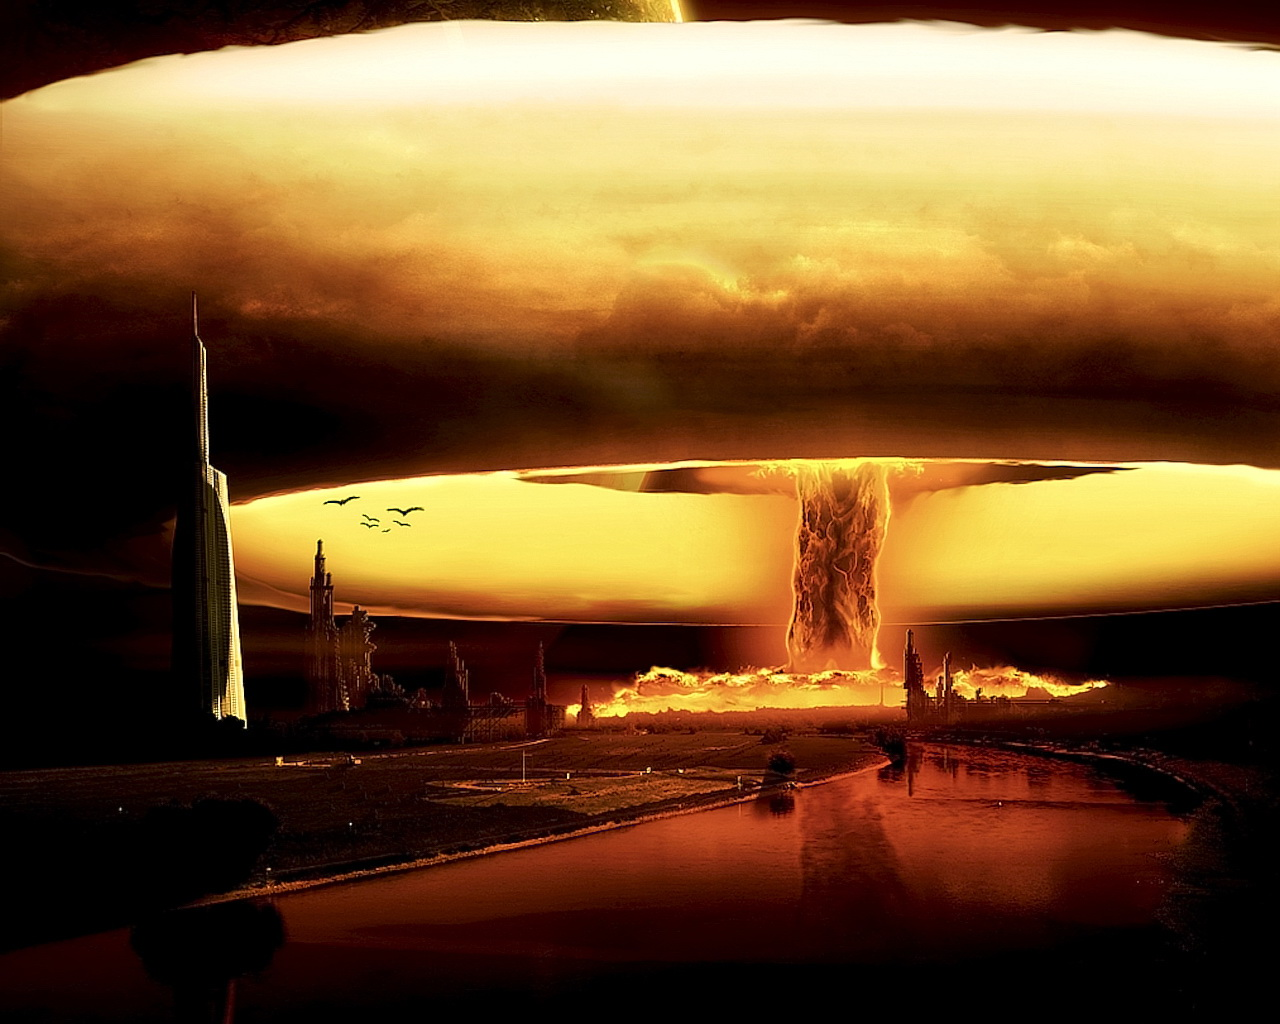 Photoshop_The_nuclear_explosion___bomb_011528_